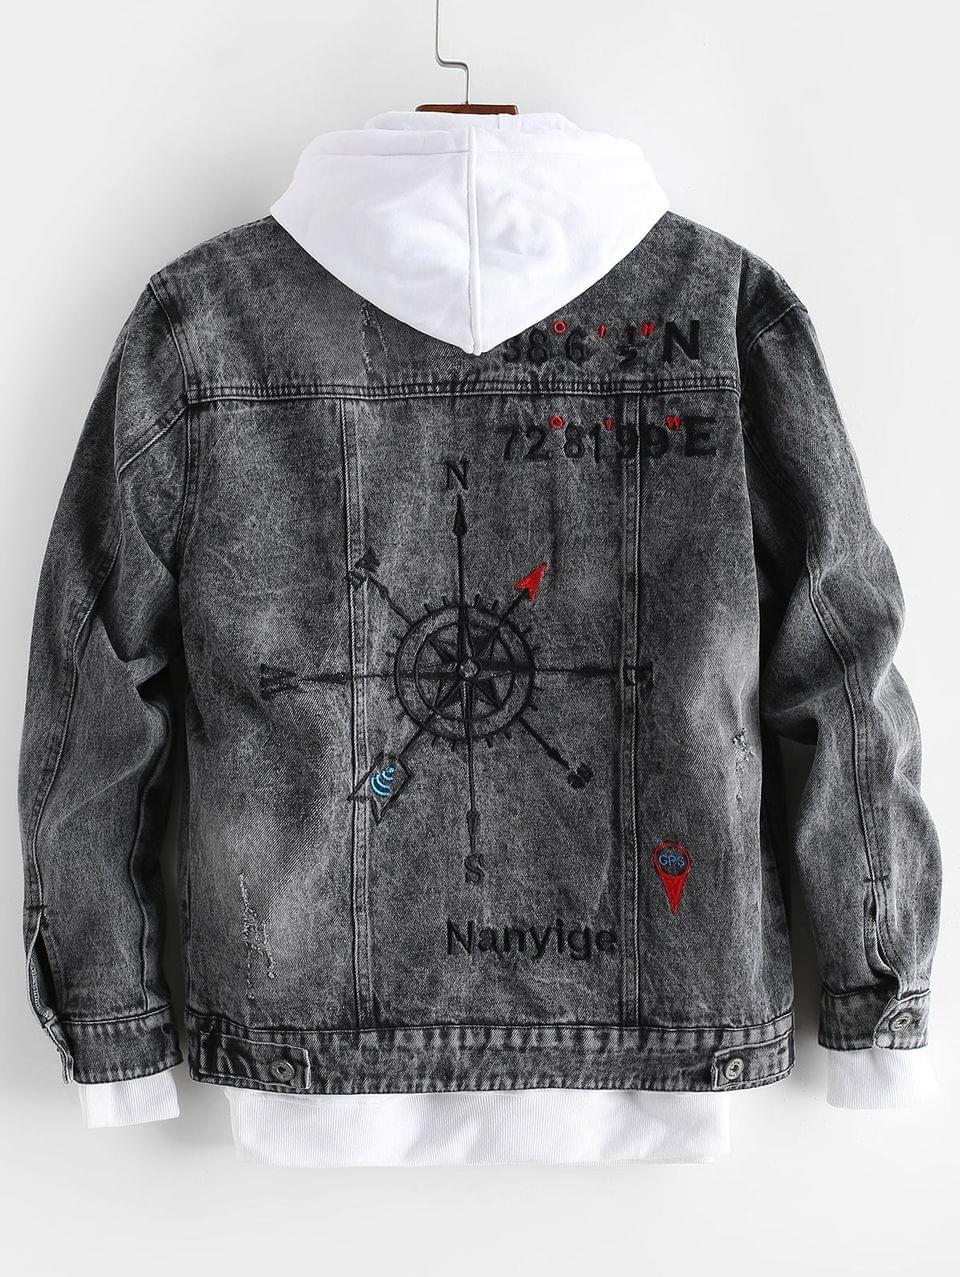 Men's Letter Embroidery Graphic Scratch Jean Jacket - Black S